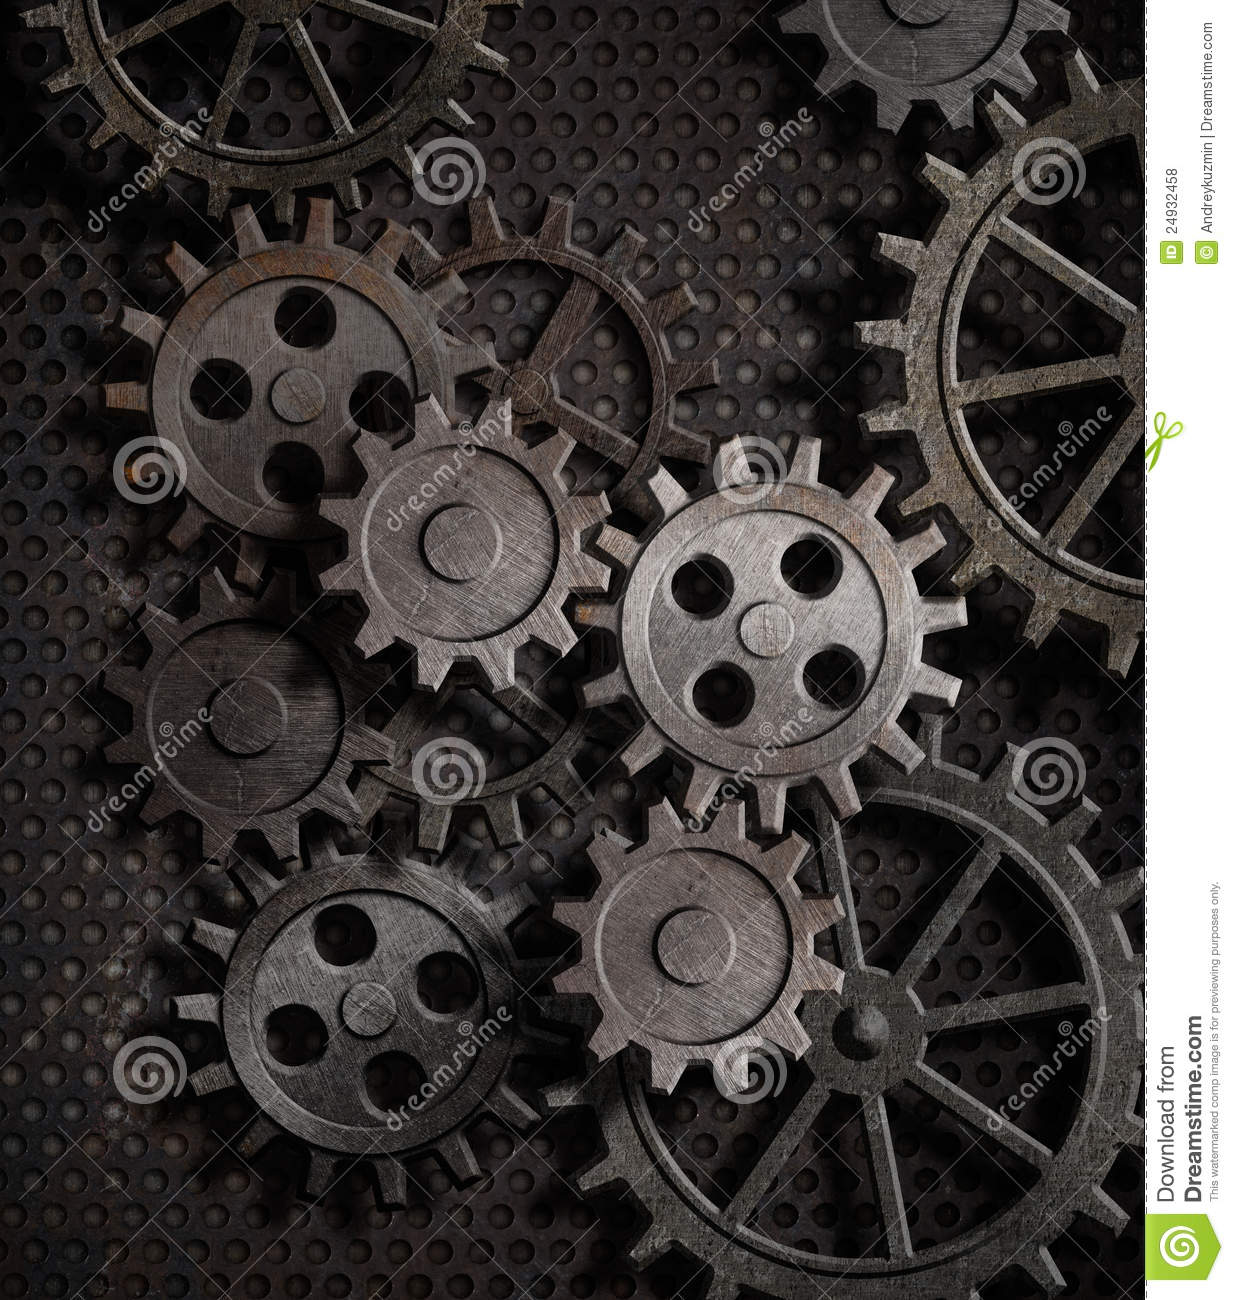 Rusty Gears And Cogs Metal Background Royalty Free Stock ...